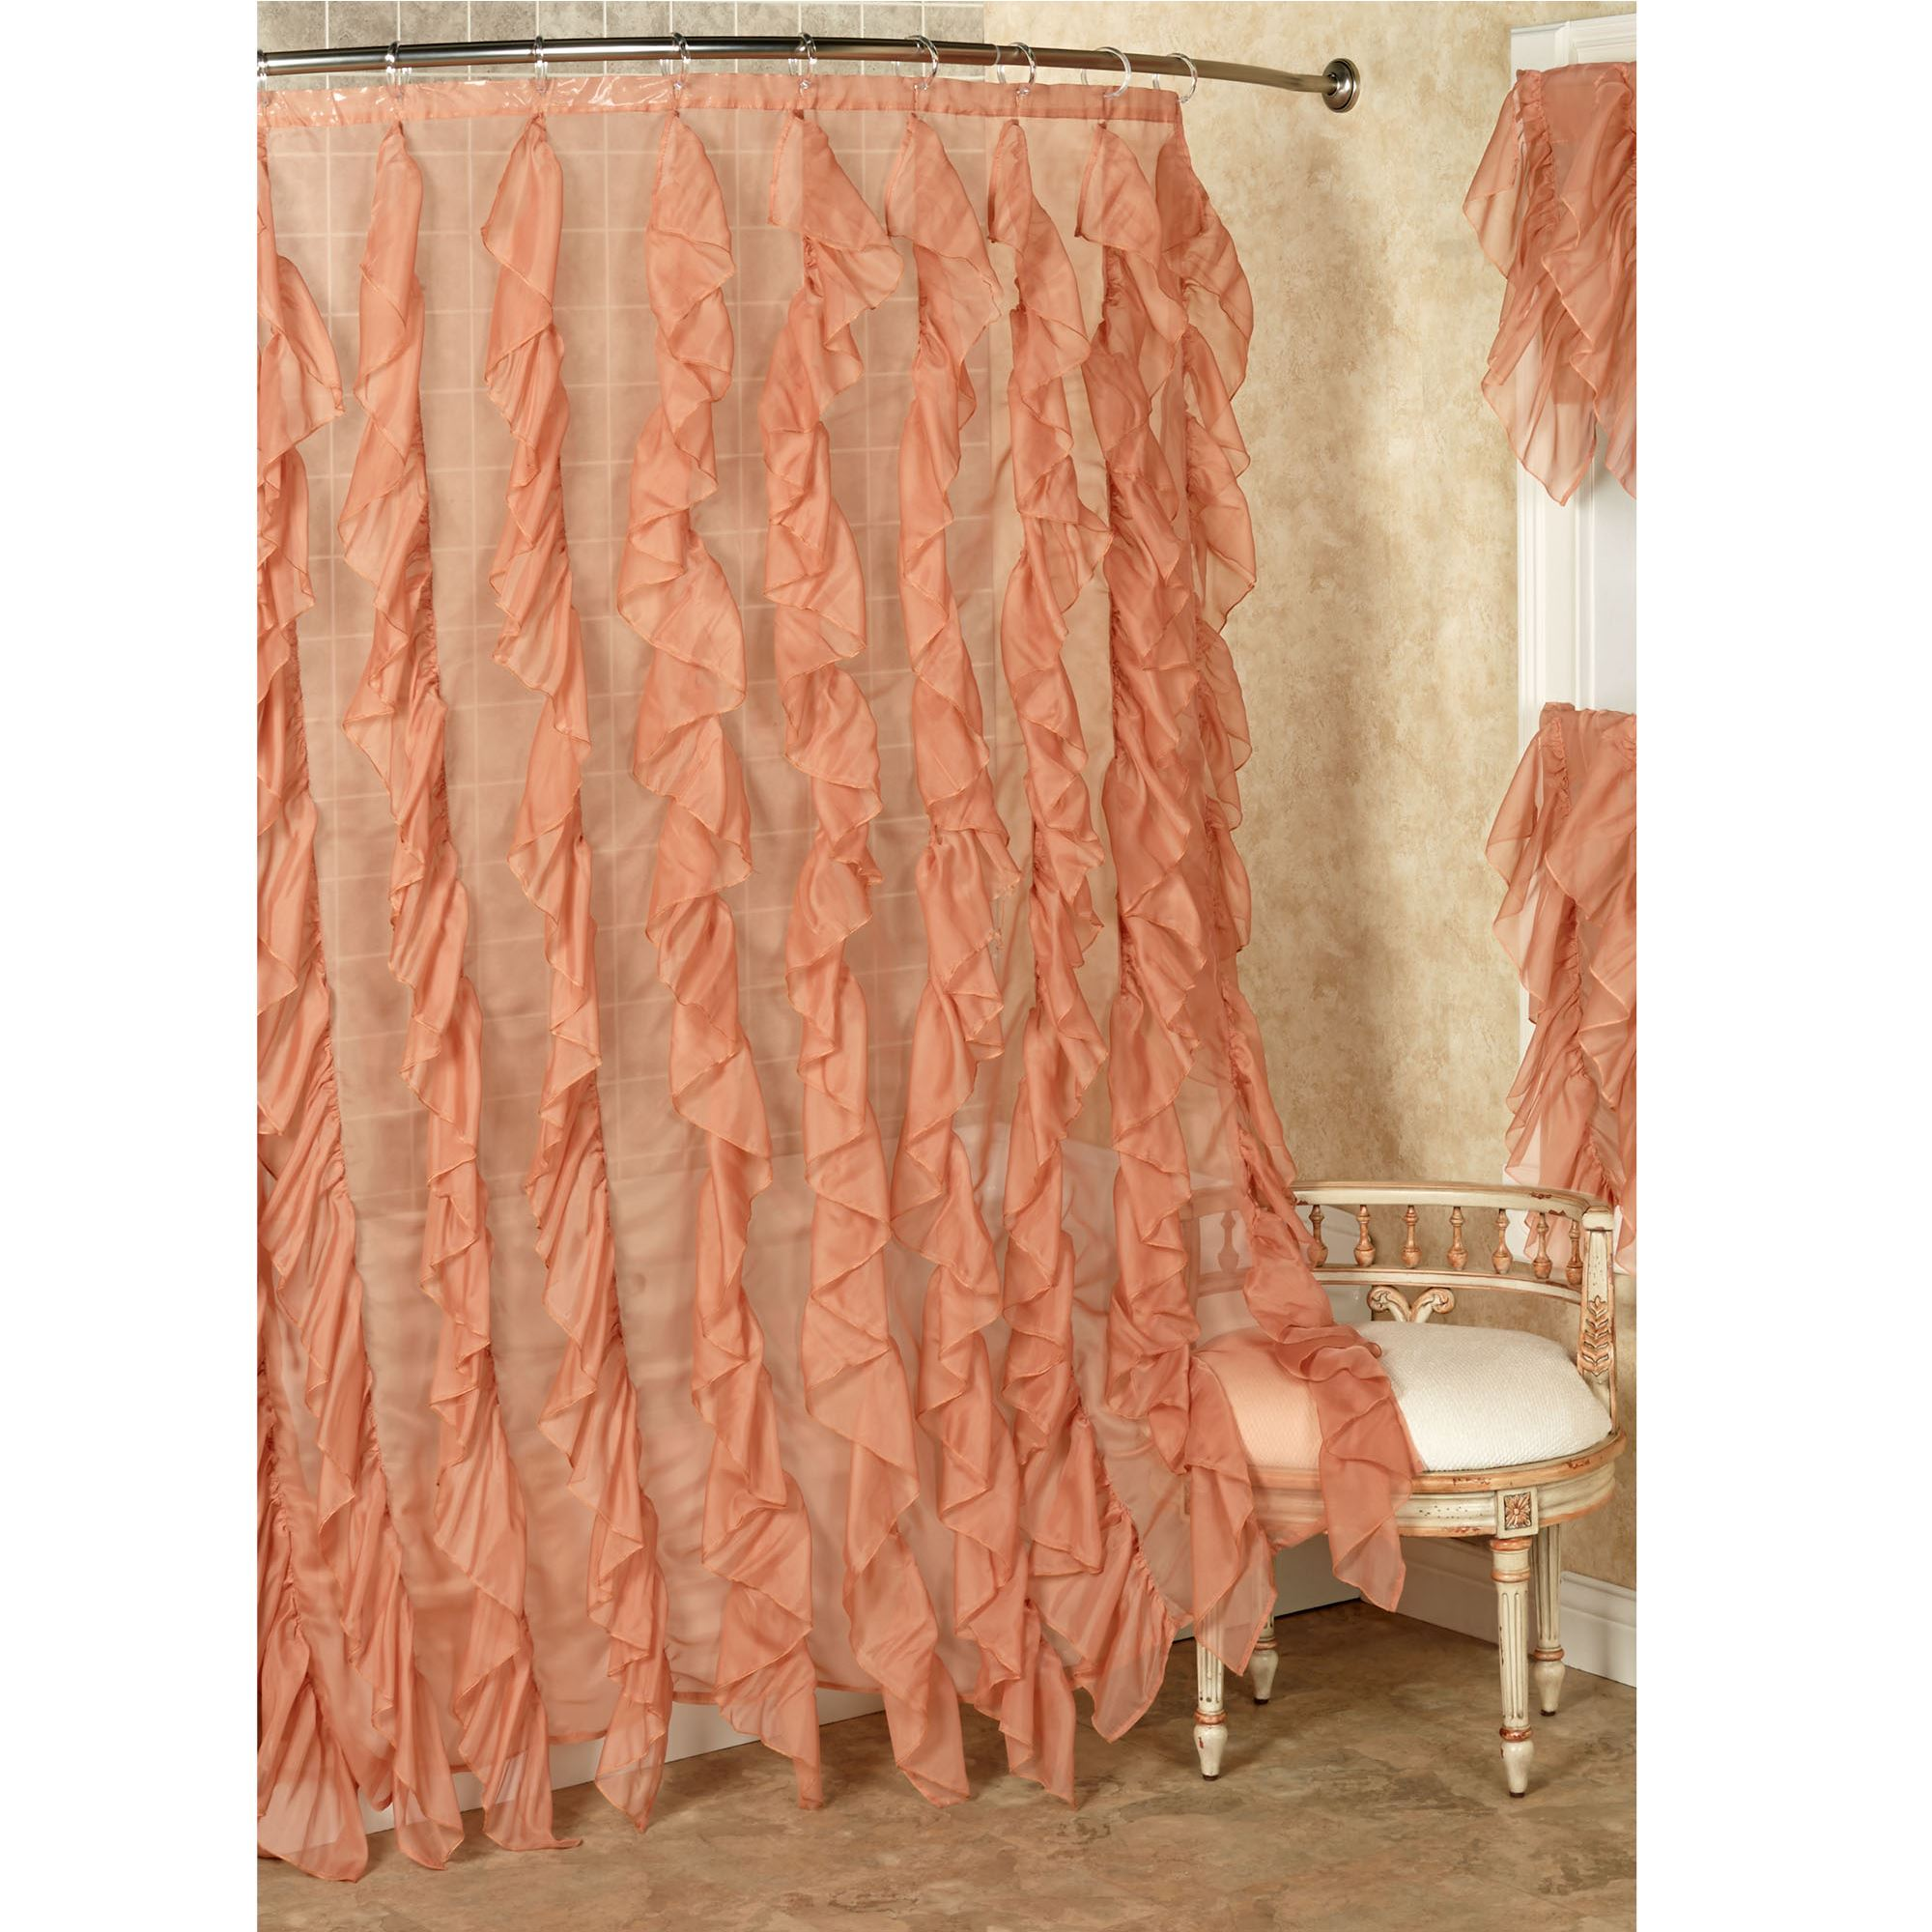 Bathroom Shower Curtain Cascade Ruffled Voile Shower Curtain